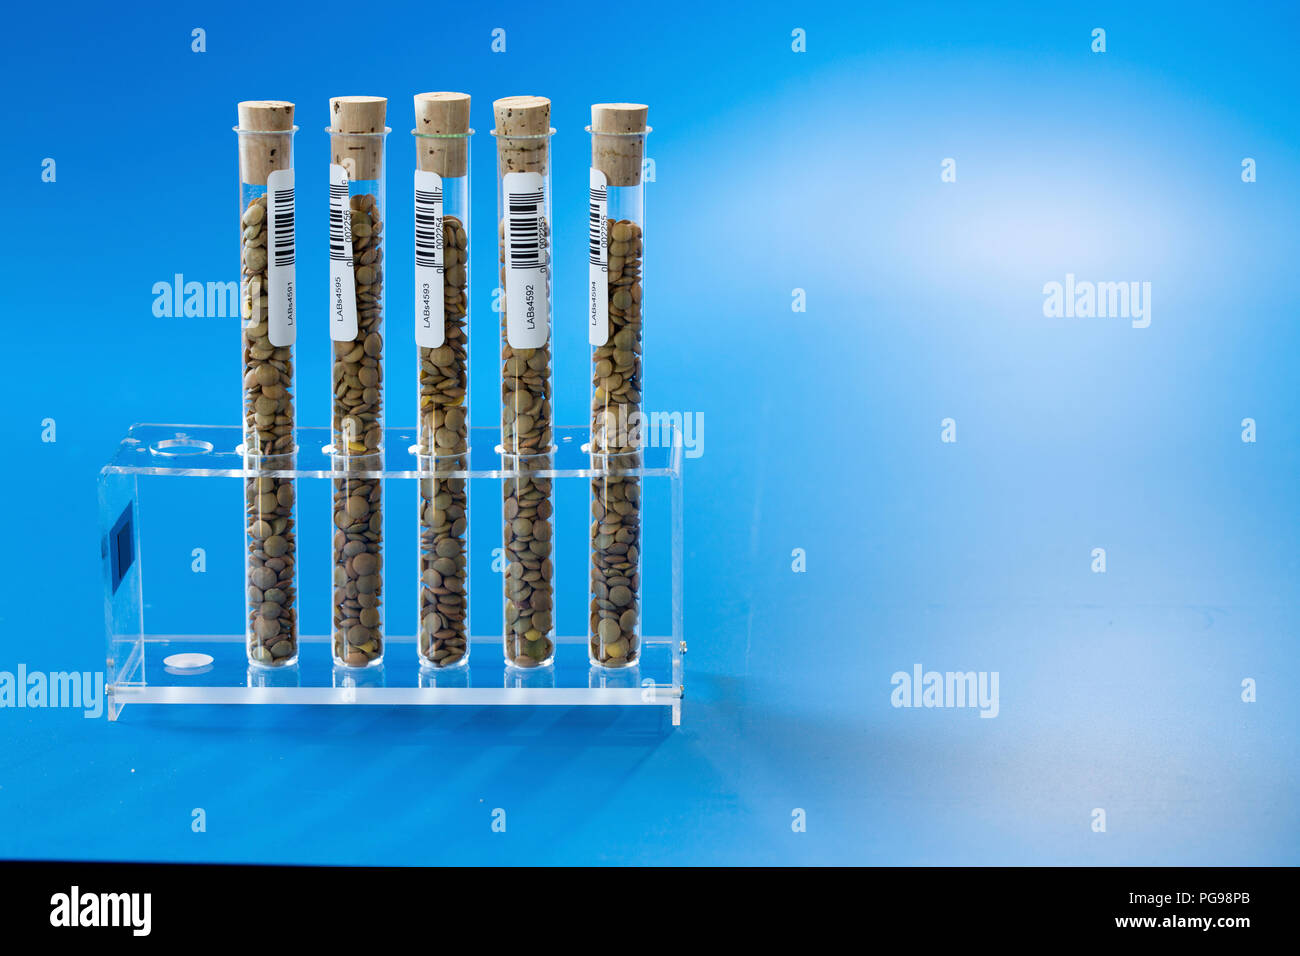 Agriculture research, conceptual image. - Stock Image